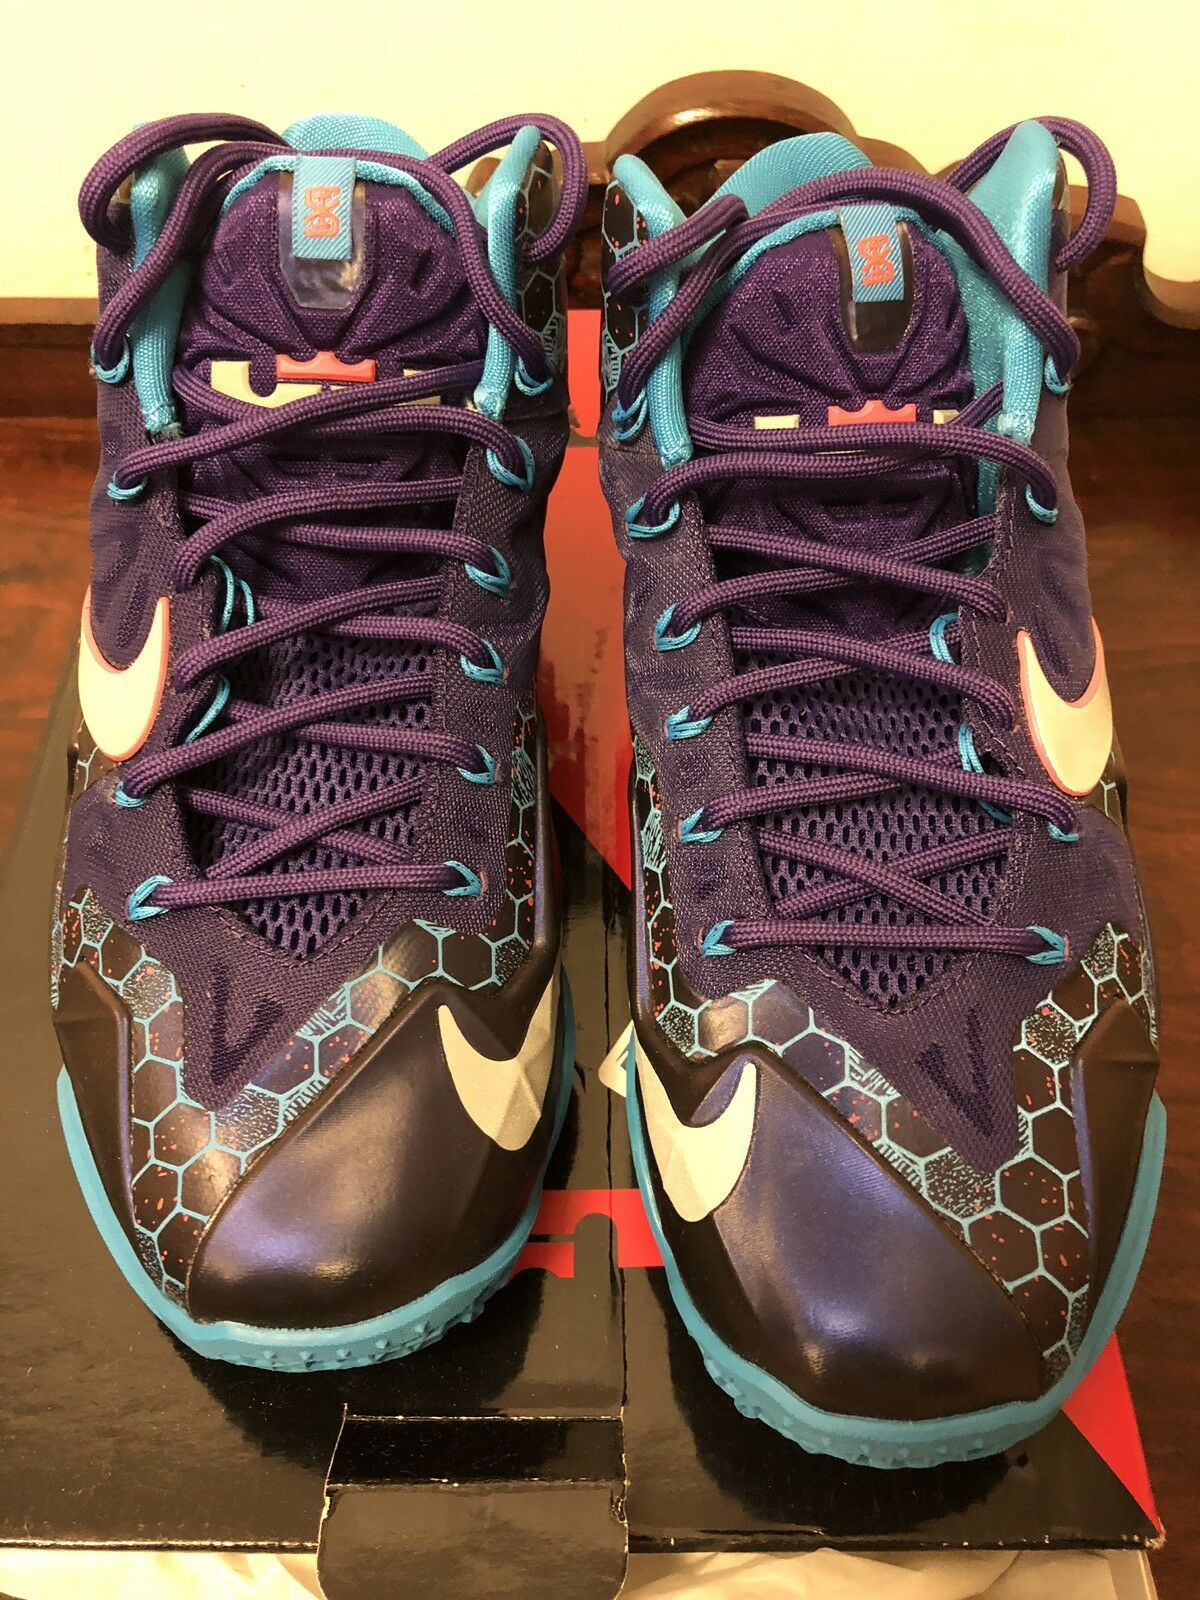 low priced 7395c b883b ... shoes usa bianco obsidian 9ff26 8a58d  coupon for nike 7 lebron hornets  11 xi summit lake hornets lebron size 7 nike b7241c